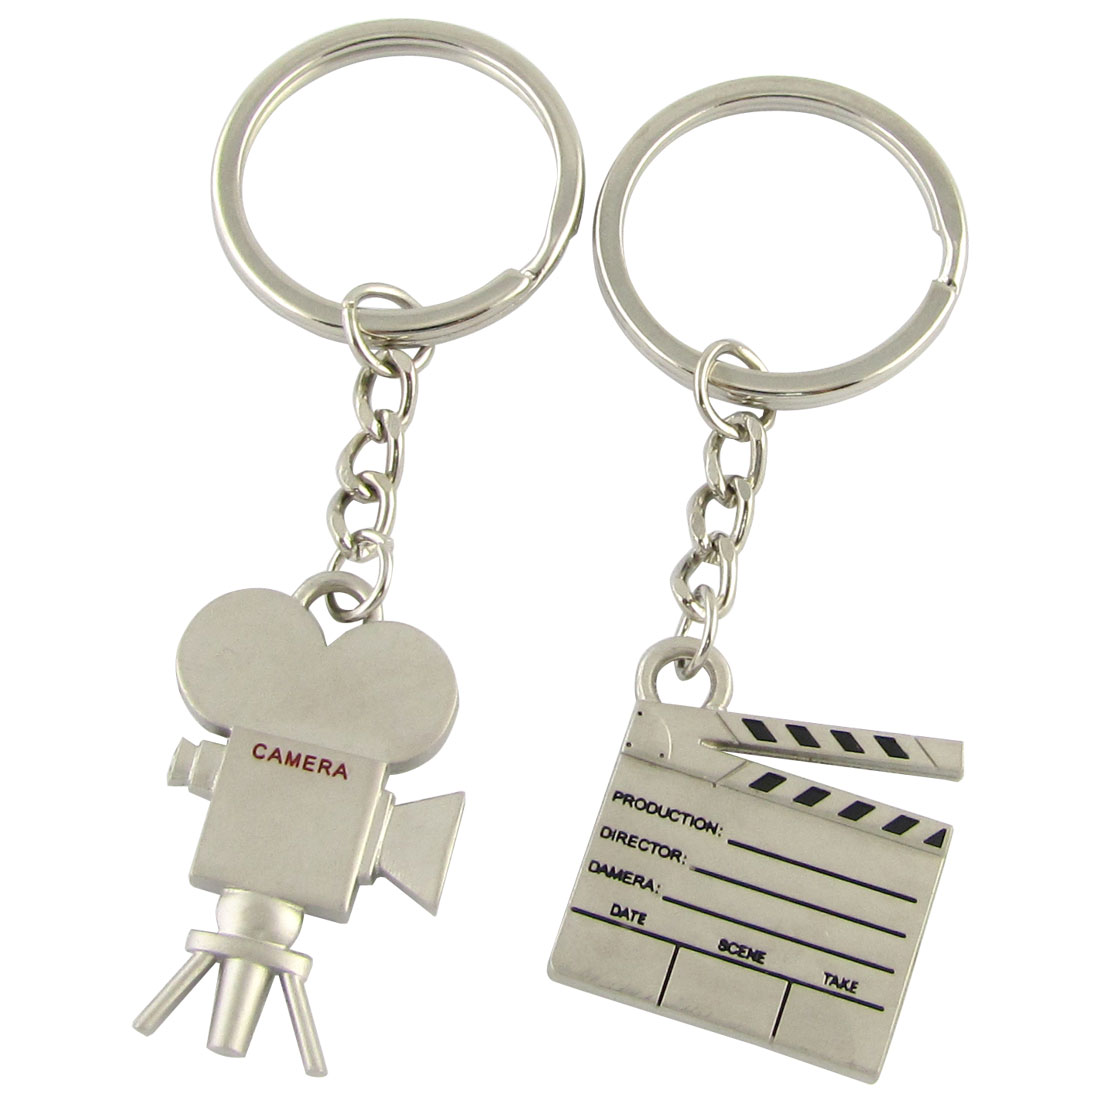 Auto Metal Film Shoot Equipment Design Decoration Key Ring Silver Tone 2 in 1